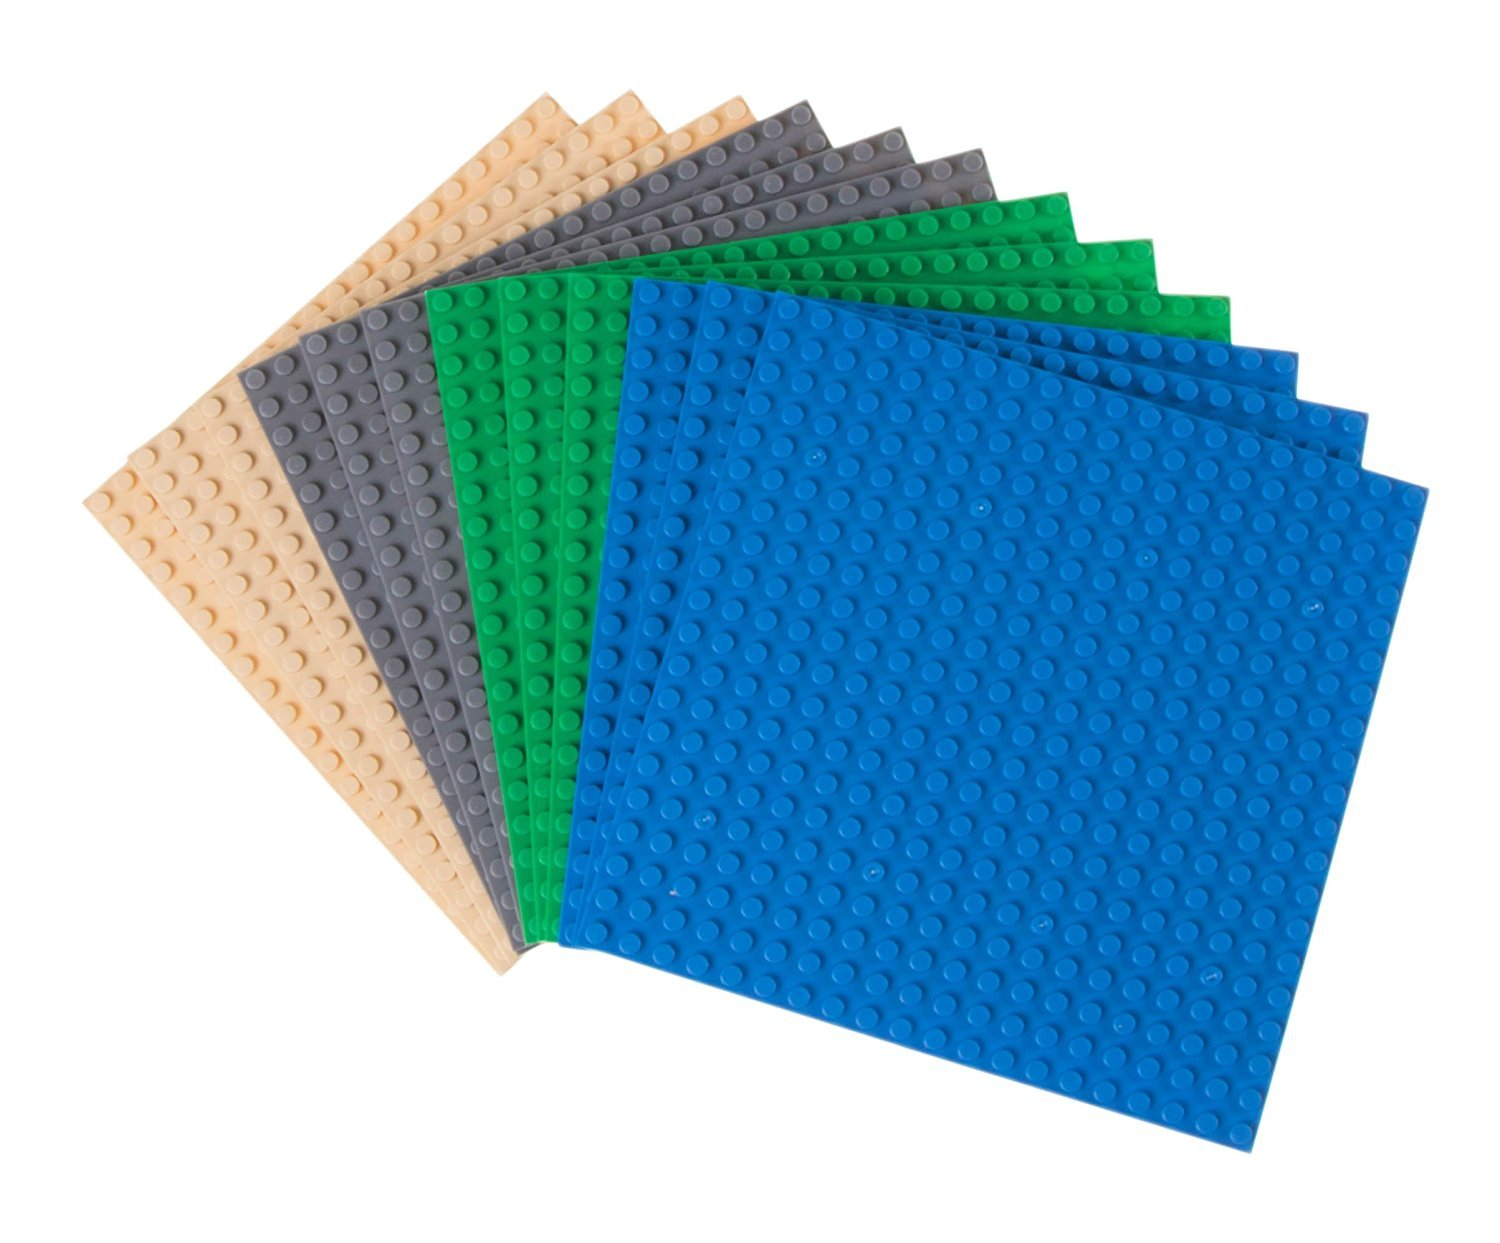 "Classic Baseplates by Strictly Briks | 100% Compatible with All Major Building Brick Brands | Double Sided Stackable Bases | 12 Tight Fit Base Plates in Blue, Green, Gray & Sand 6.25"" x 6.25"" Review"